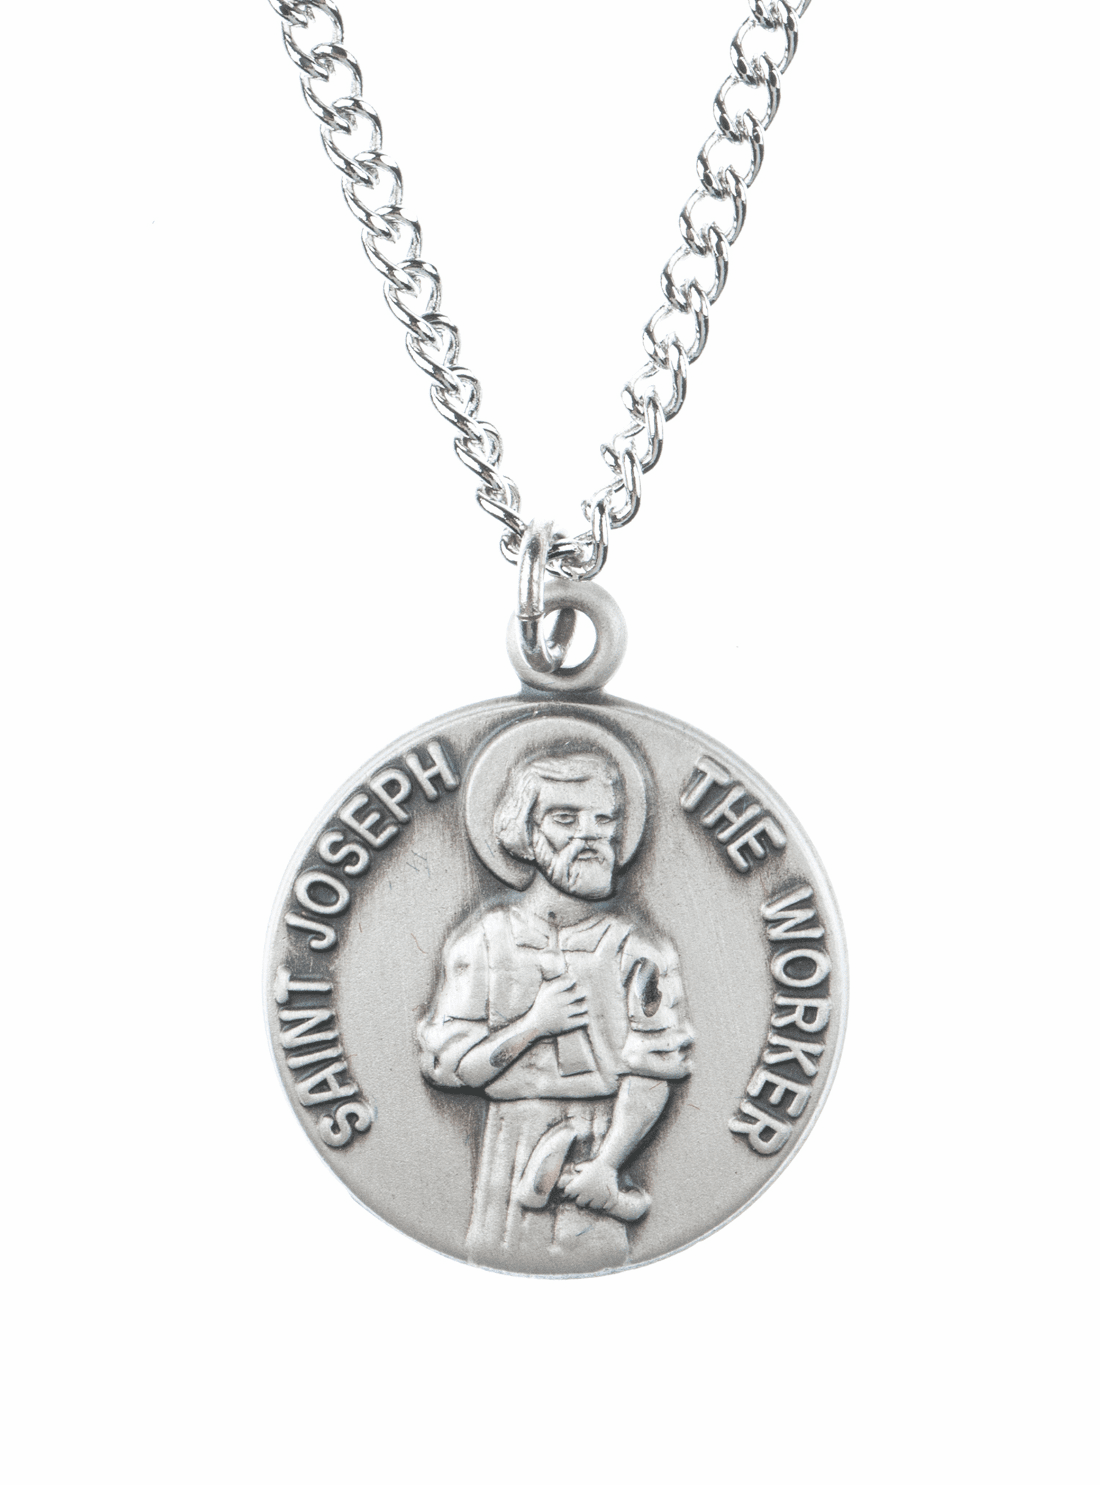 "St Joesph Worker Saint Medal Pendant w/18"" Chain by Jeweled Cross"